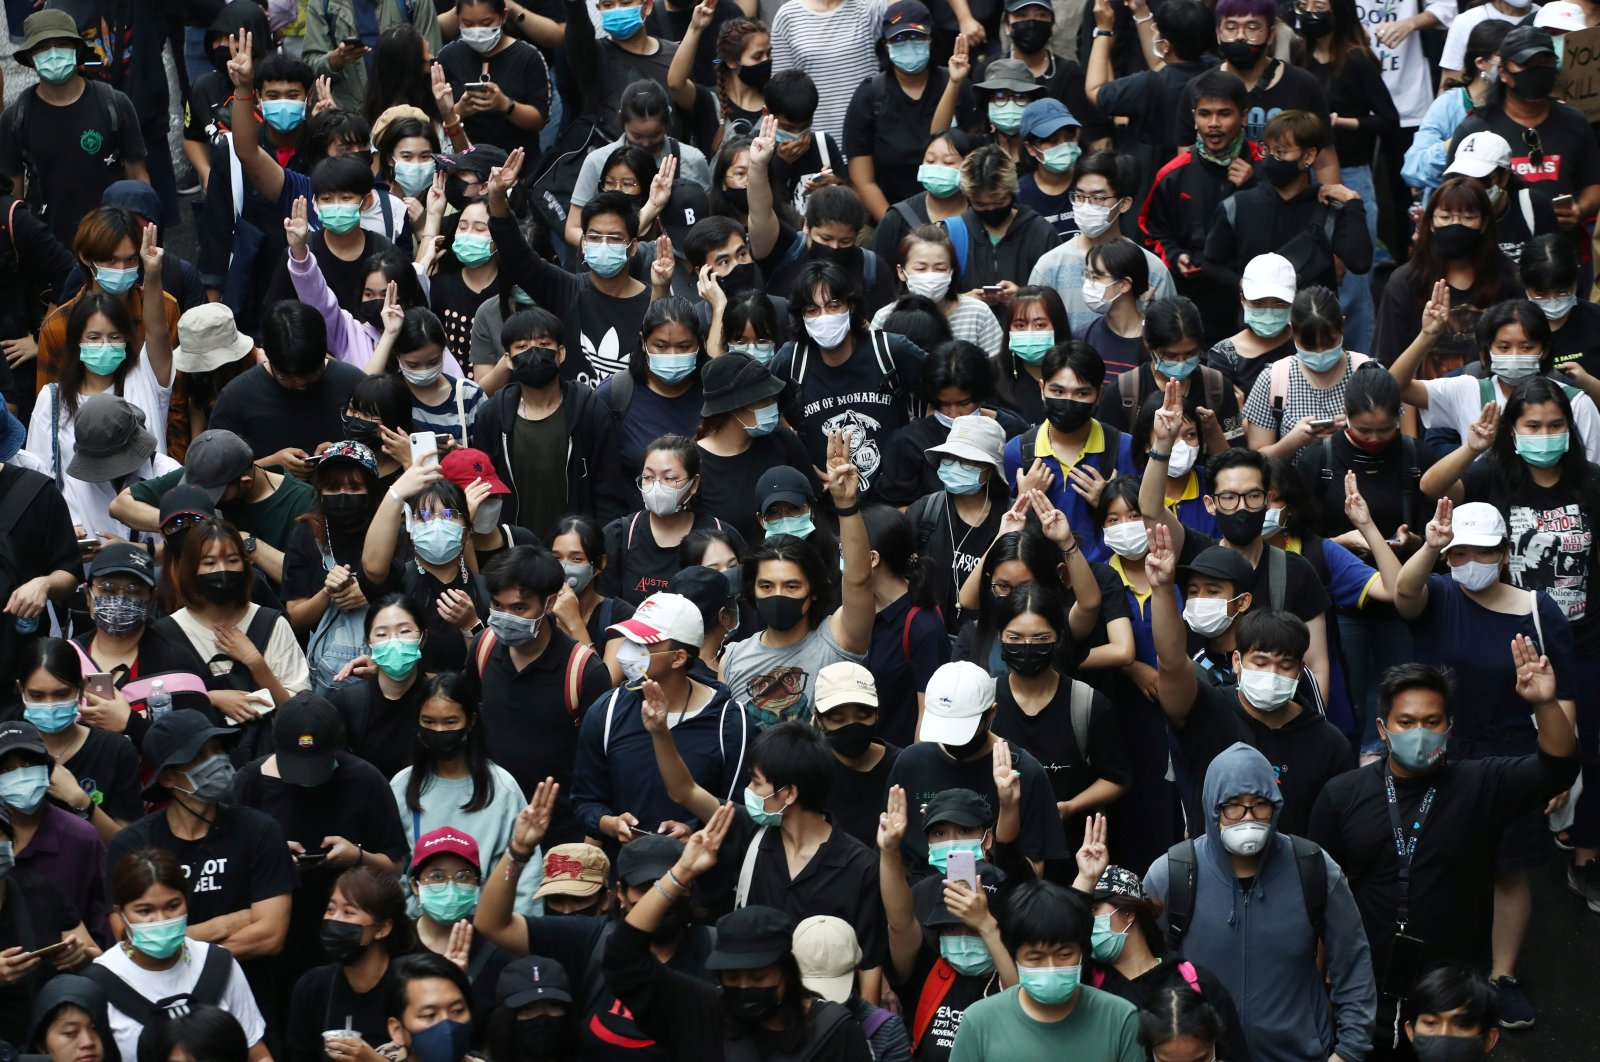 Pro-democracy demonstrators gather during a protest, in Bangkok, Thailand Oct. 17, 2020. (Reuters Photo)